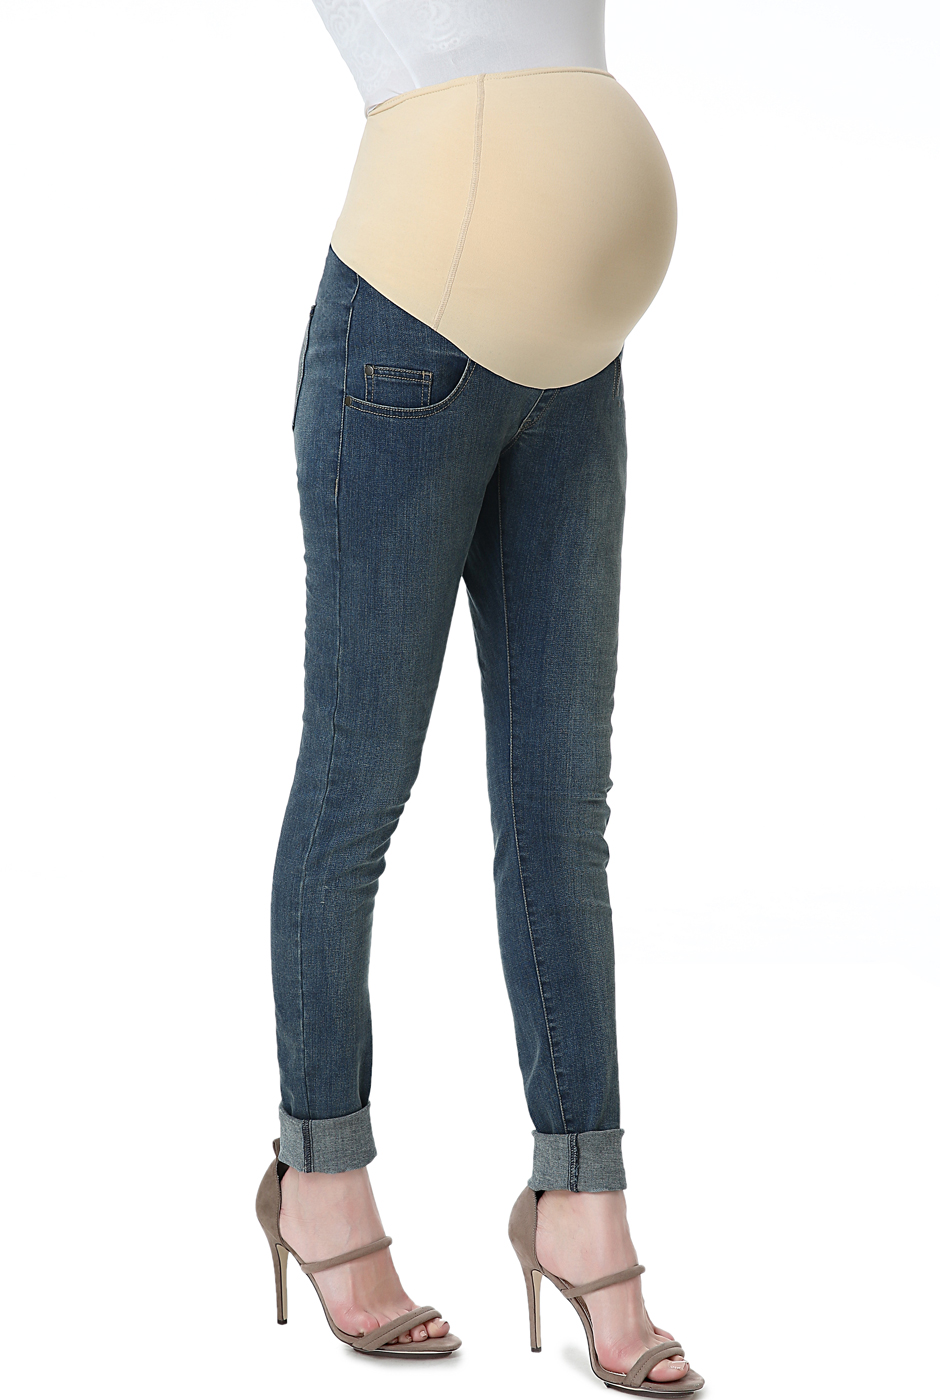 Maternity Women's Skinny Leg Denim Jeans - Medium Indigo 28